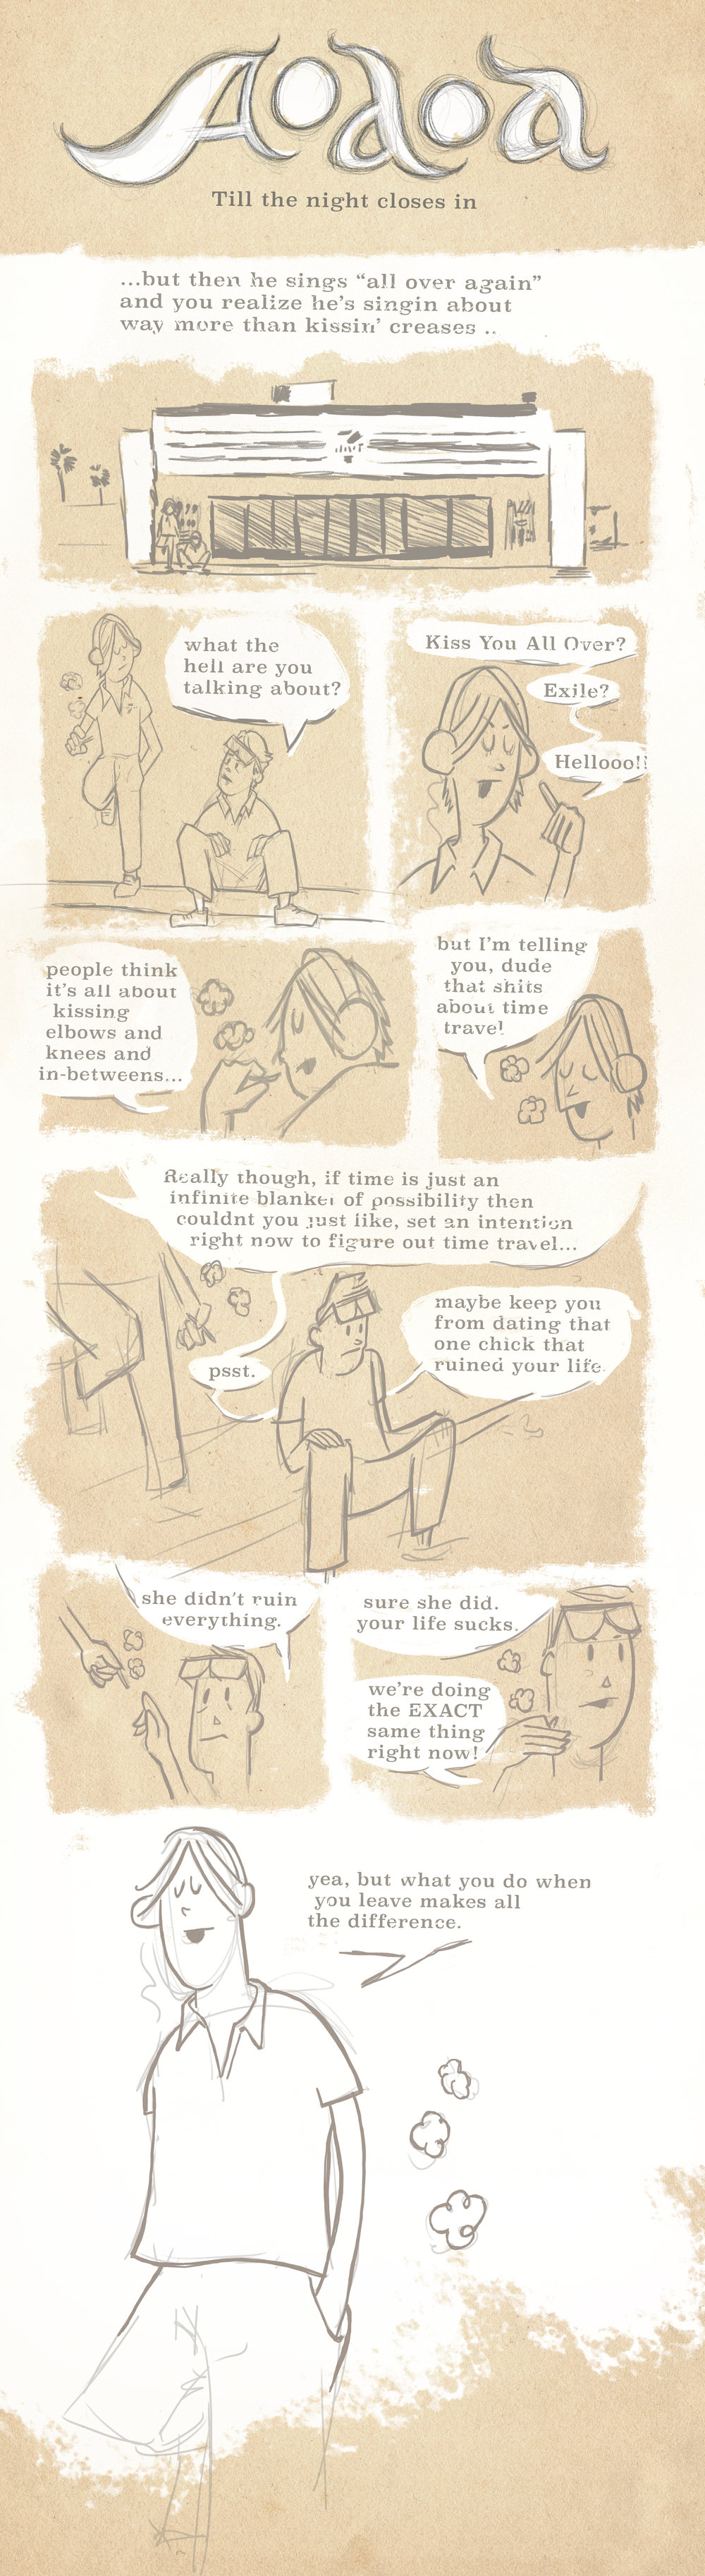 Chapter two of the HeyRoger webcomic AOAOA.